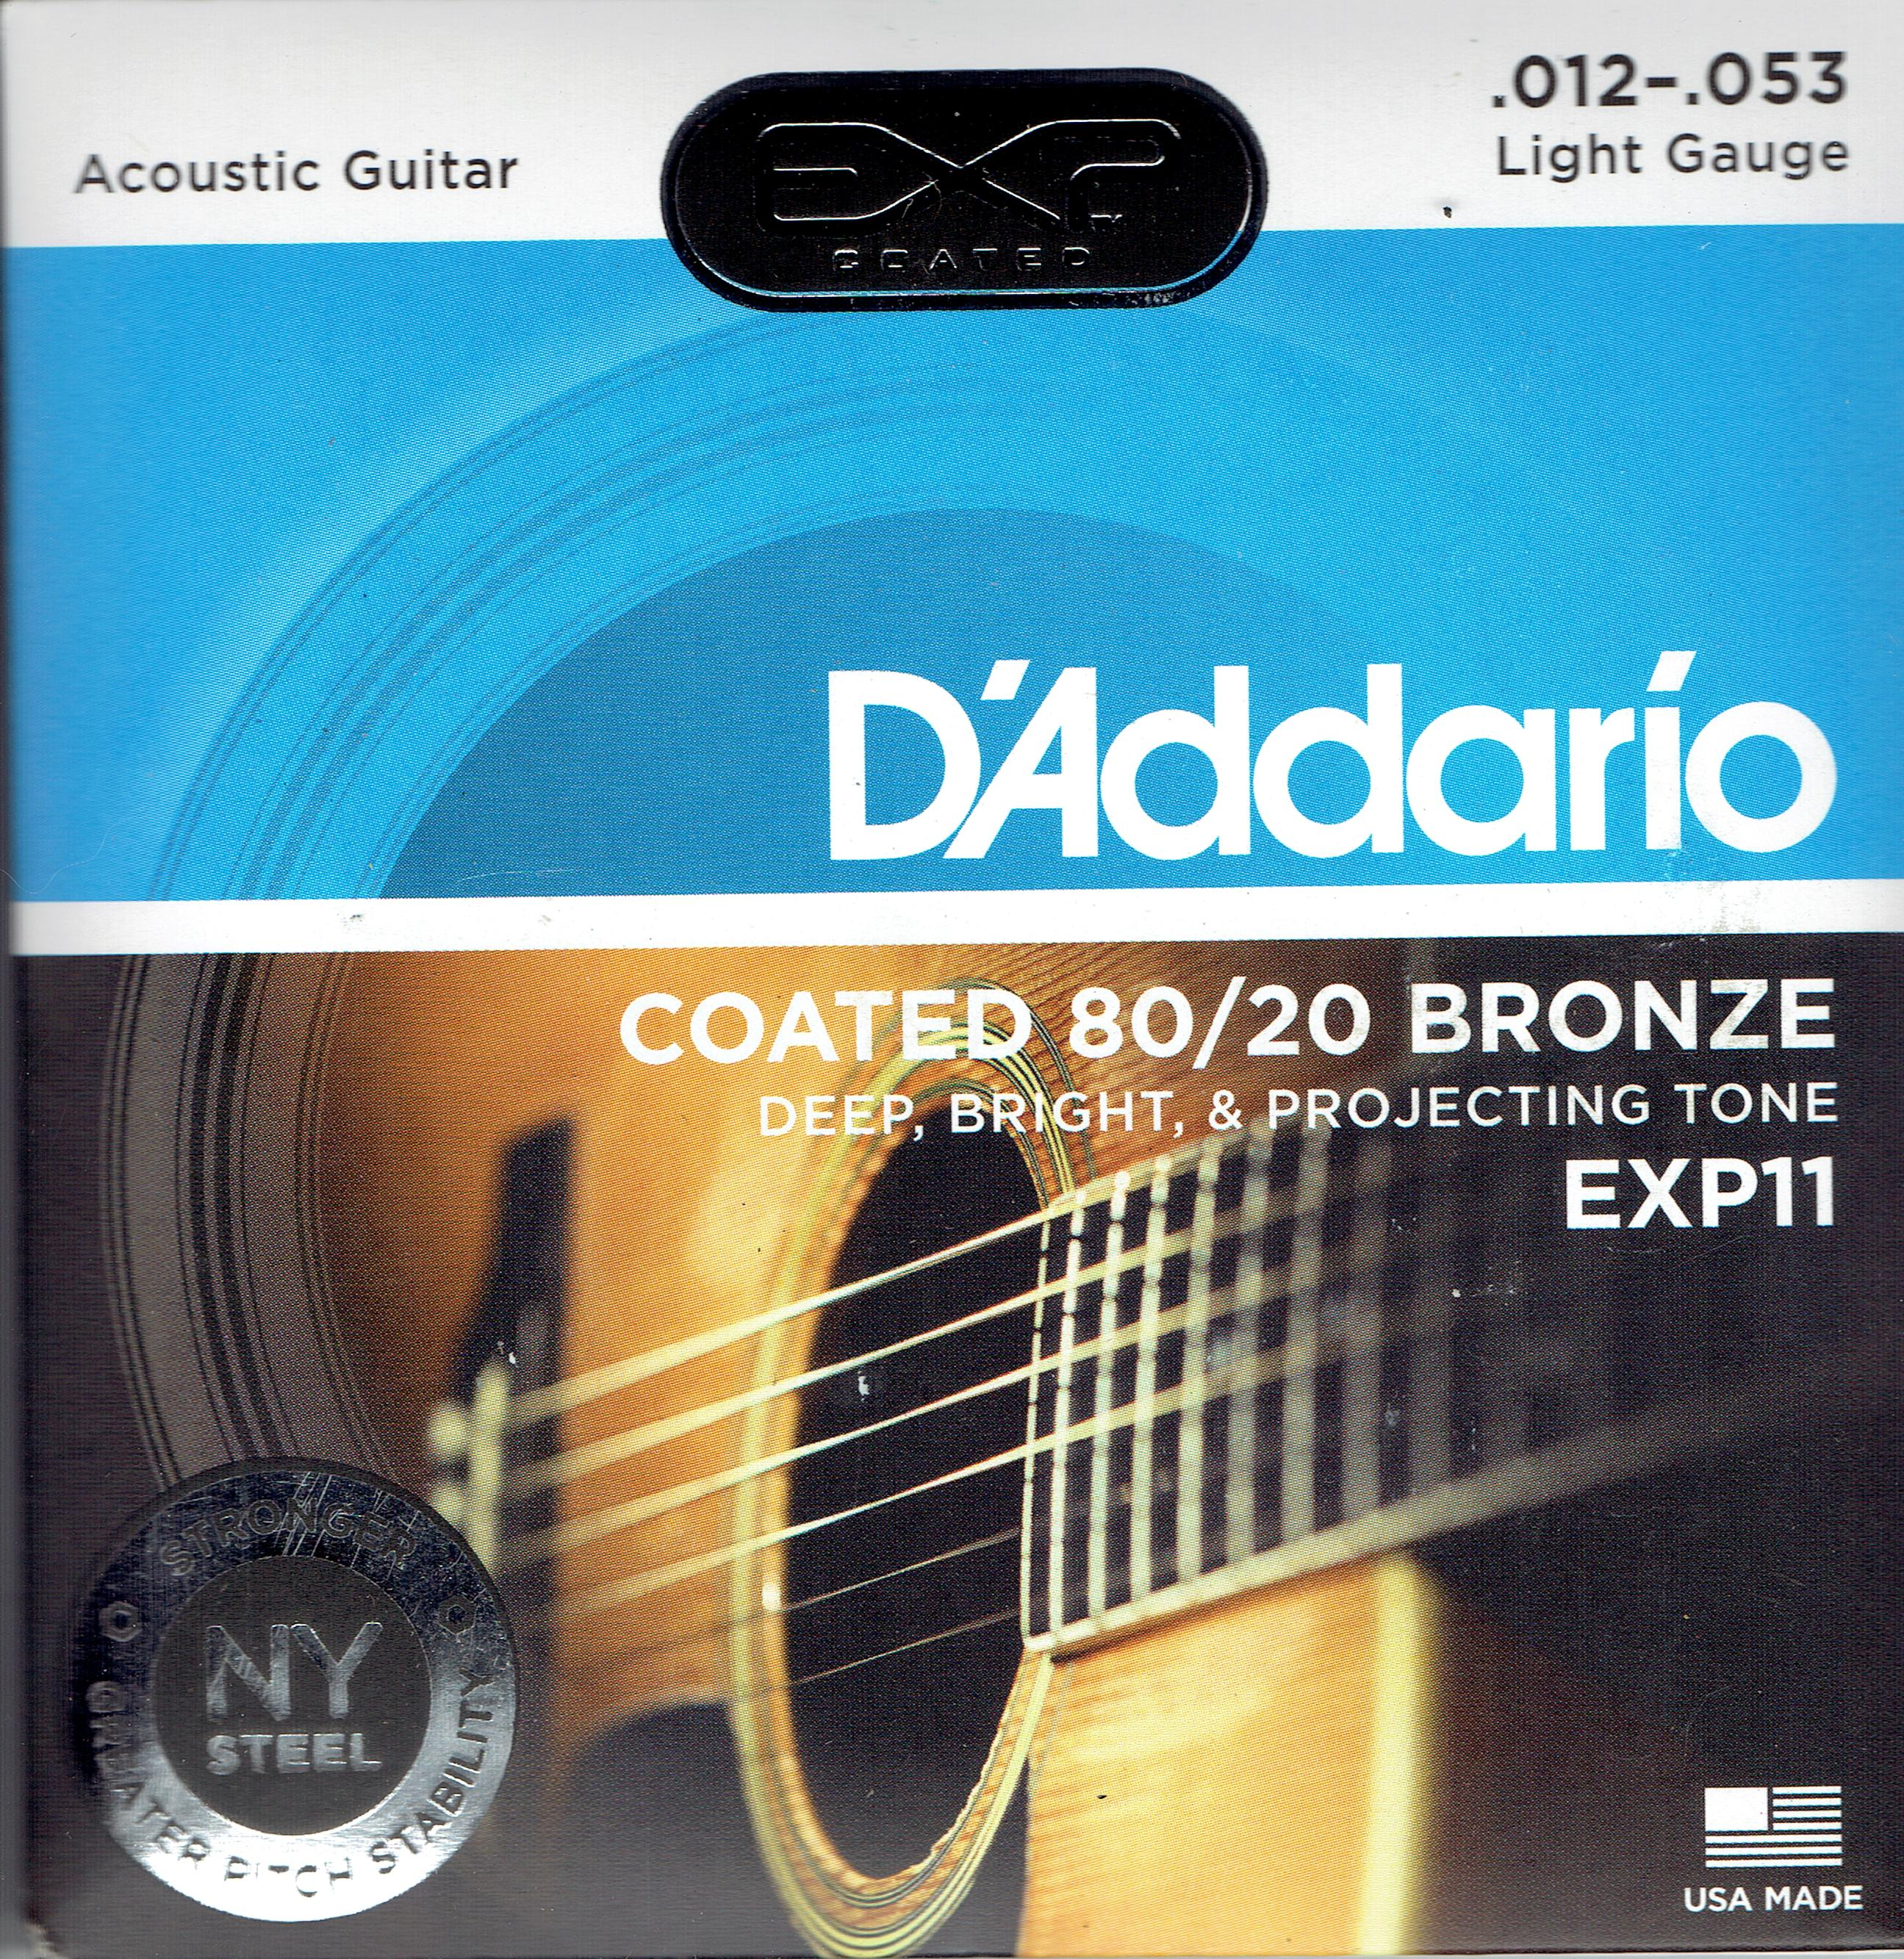 D'Addario 80/20 coated